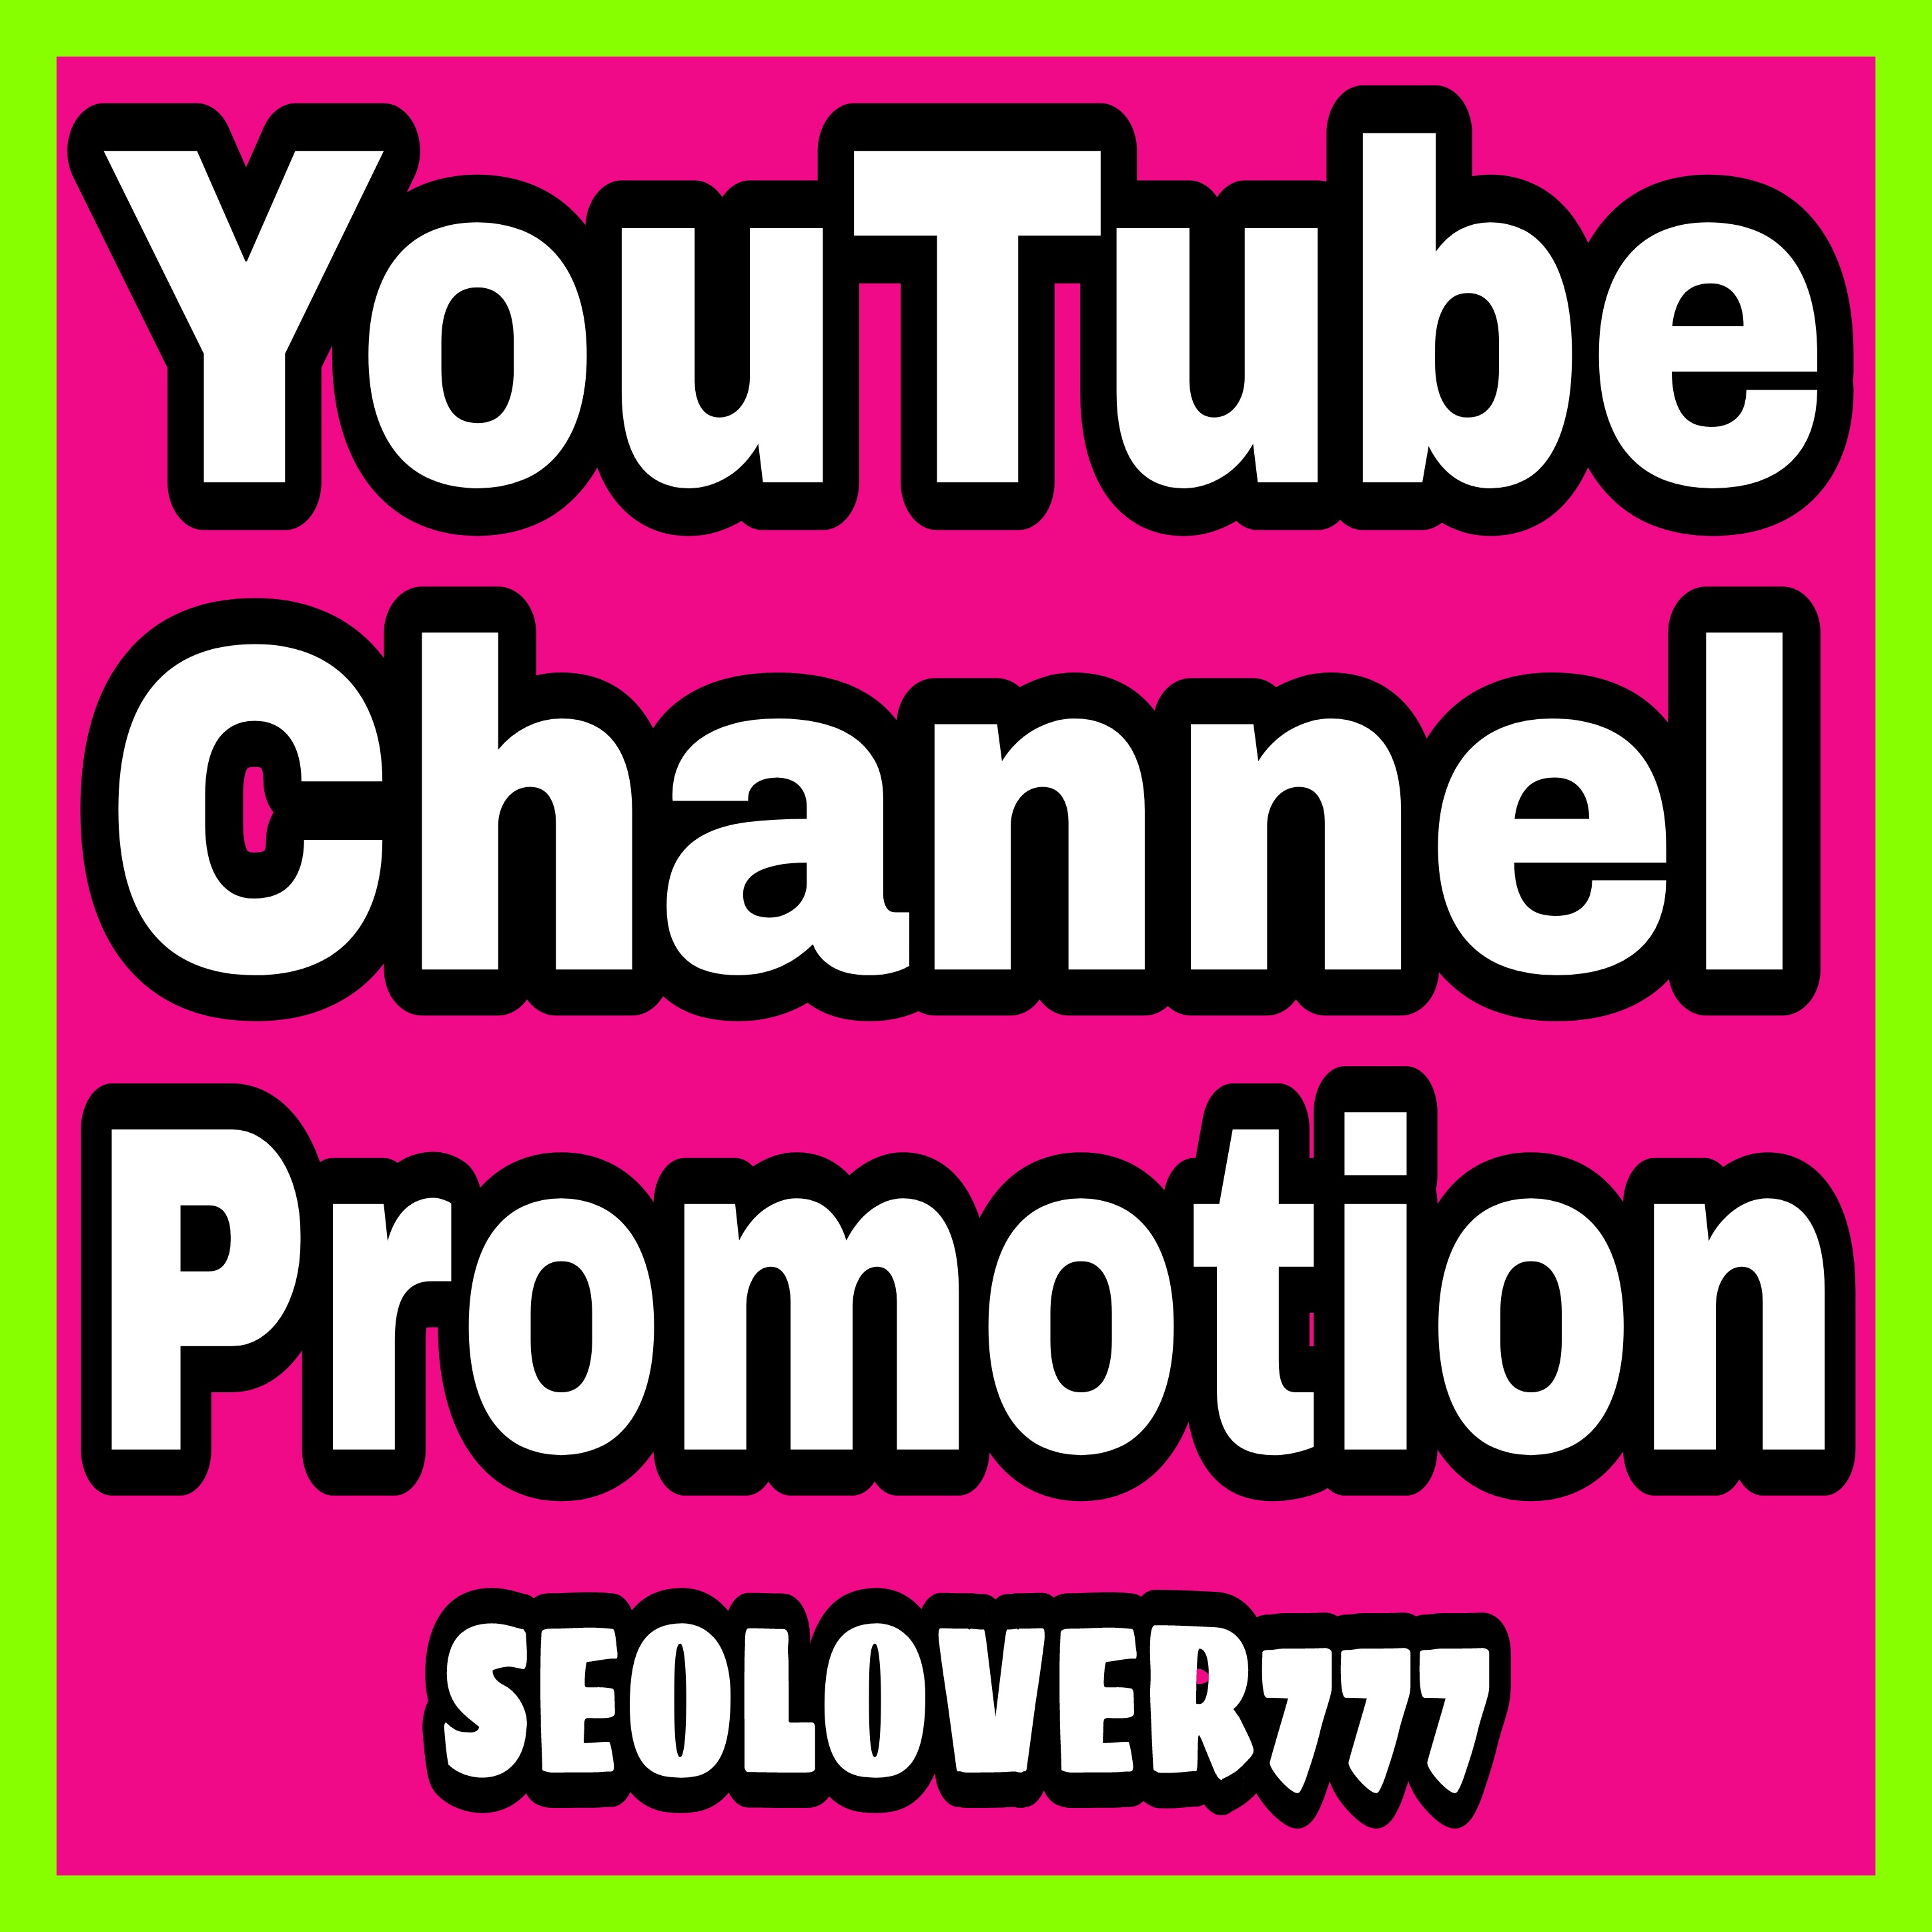 YouTube organic promotion with real, fast & high quality